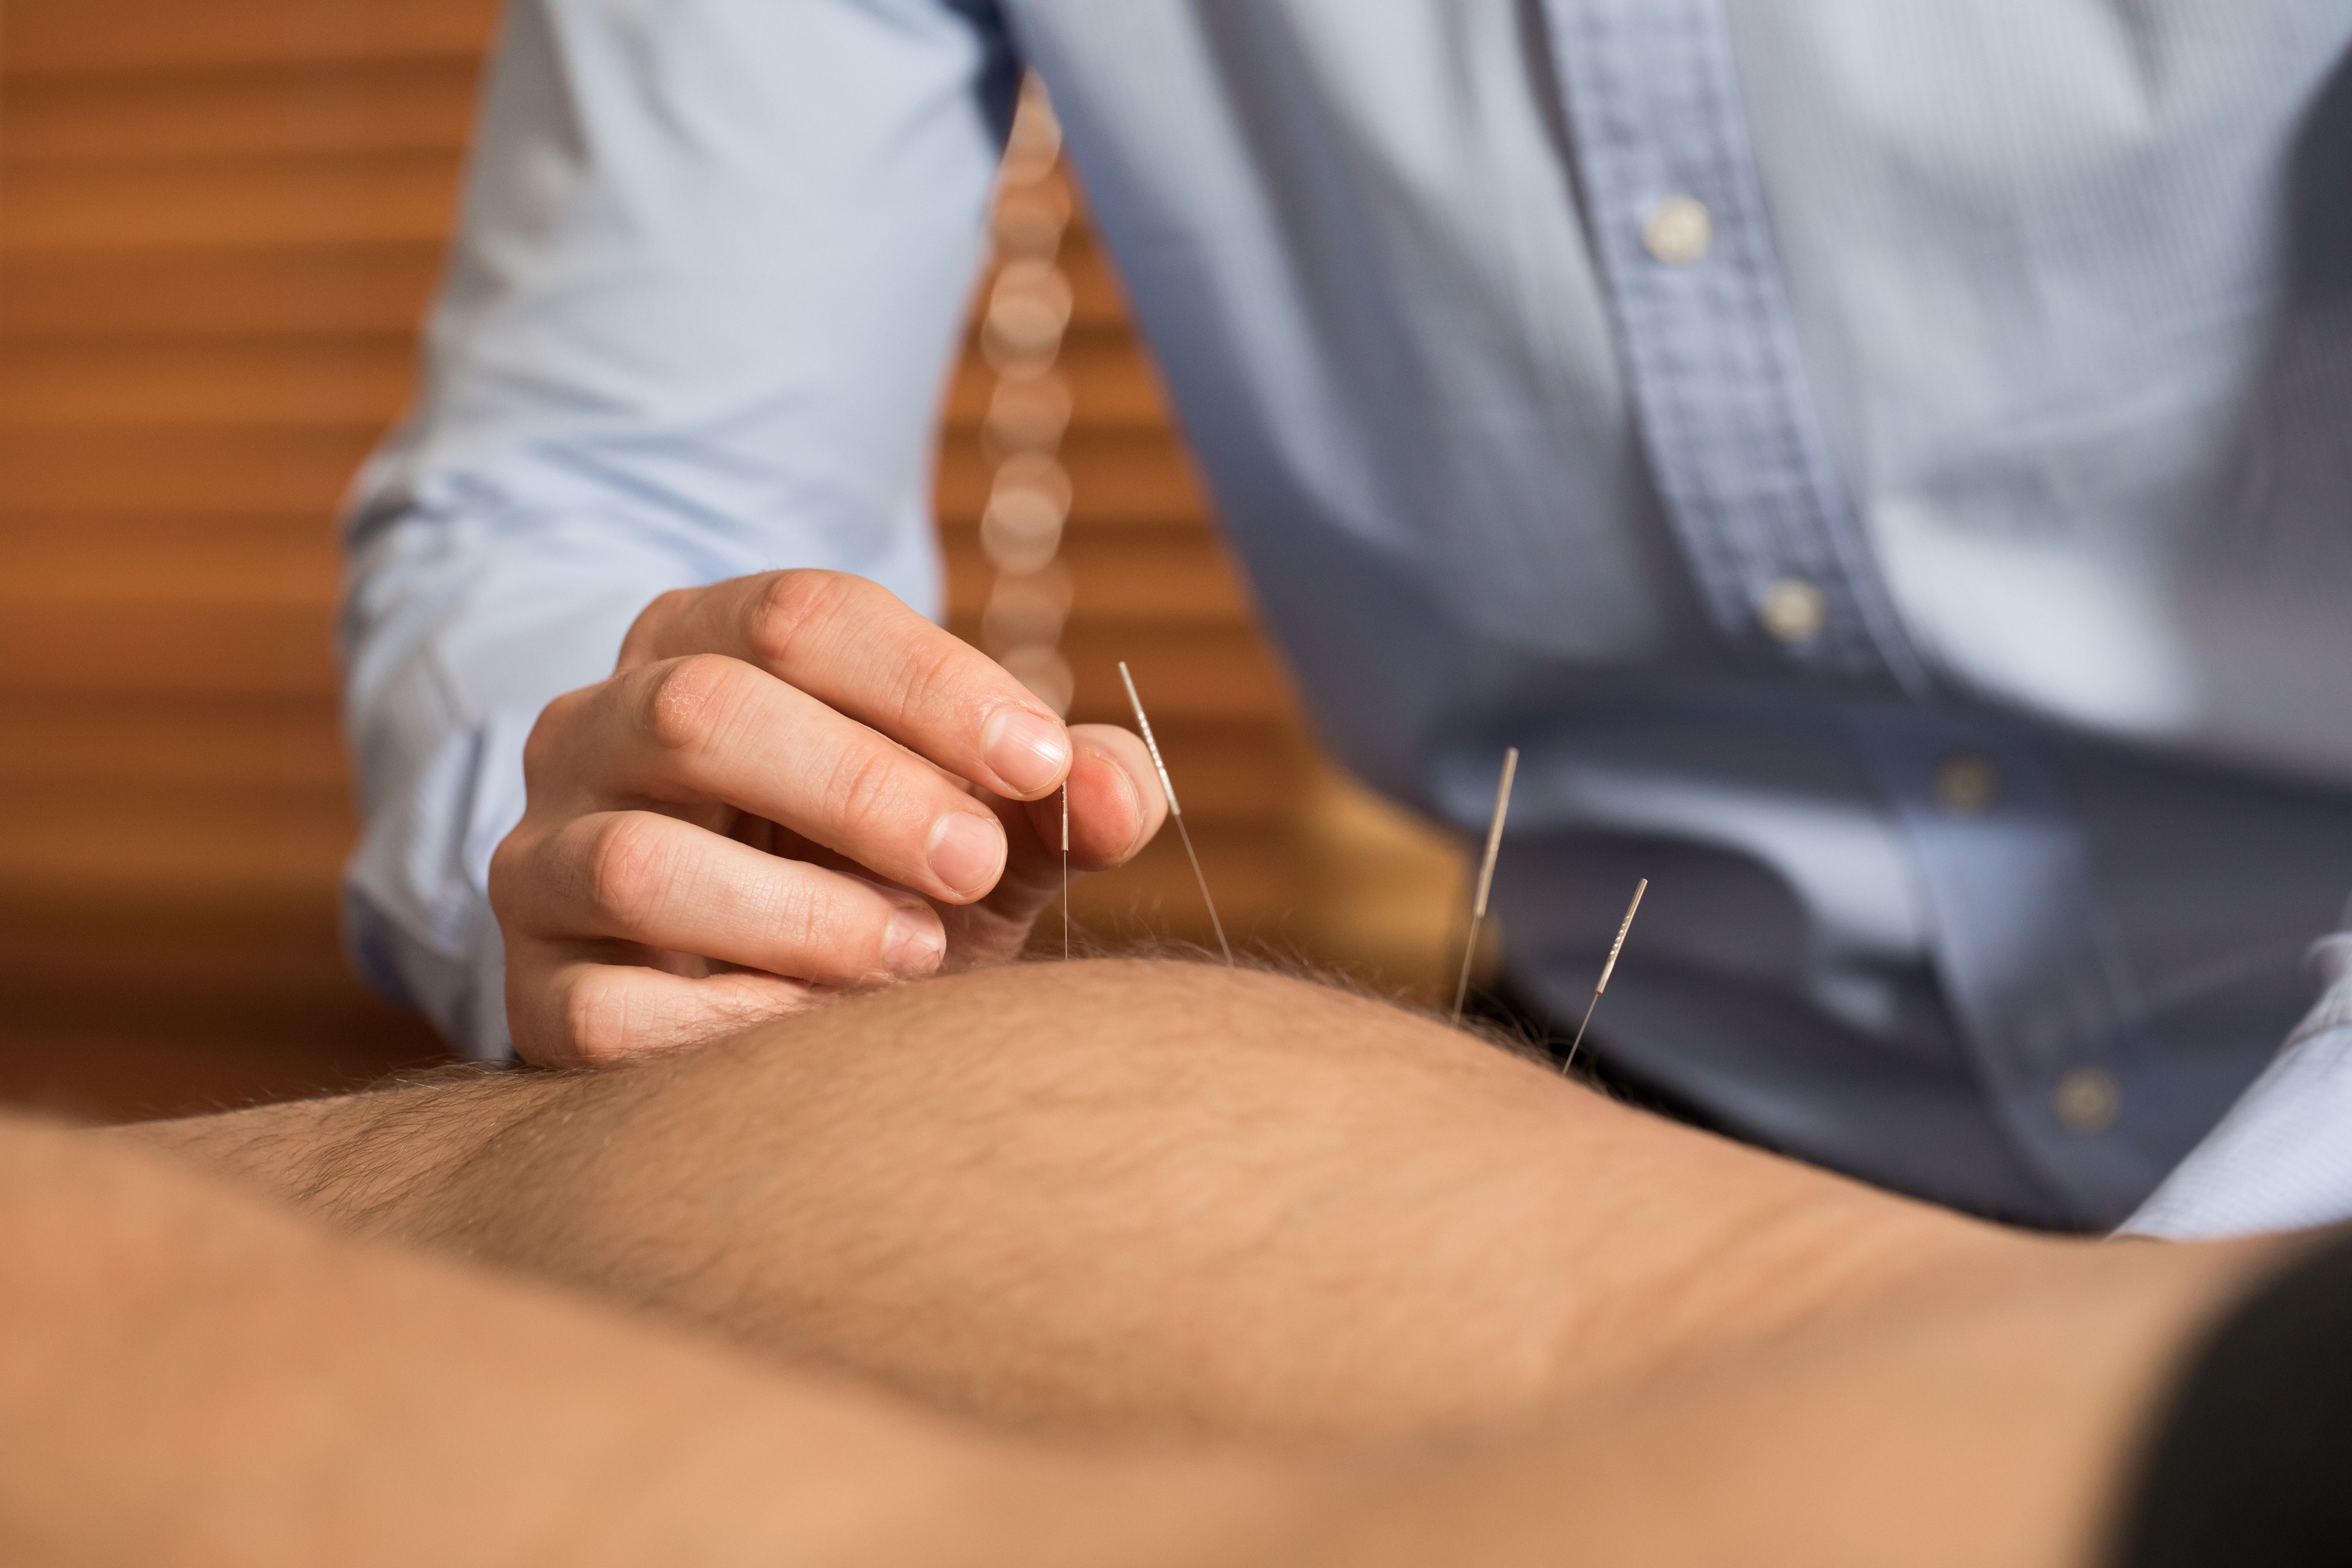 Massage & Acupuncture Therapy